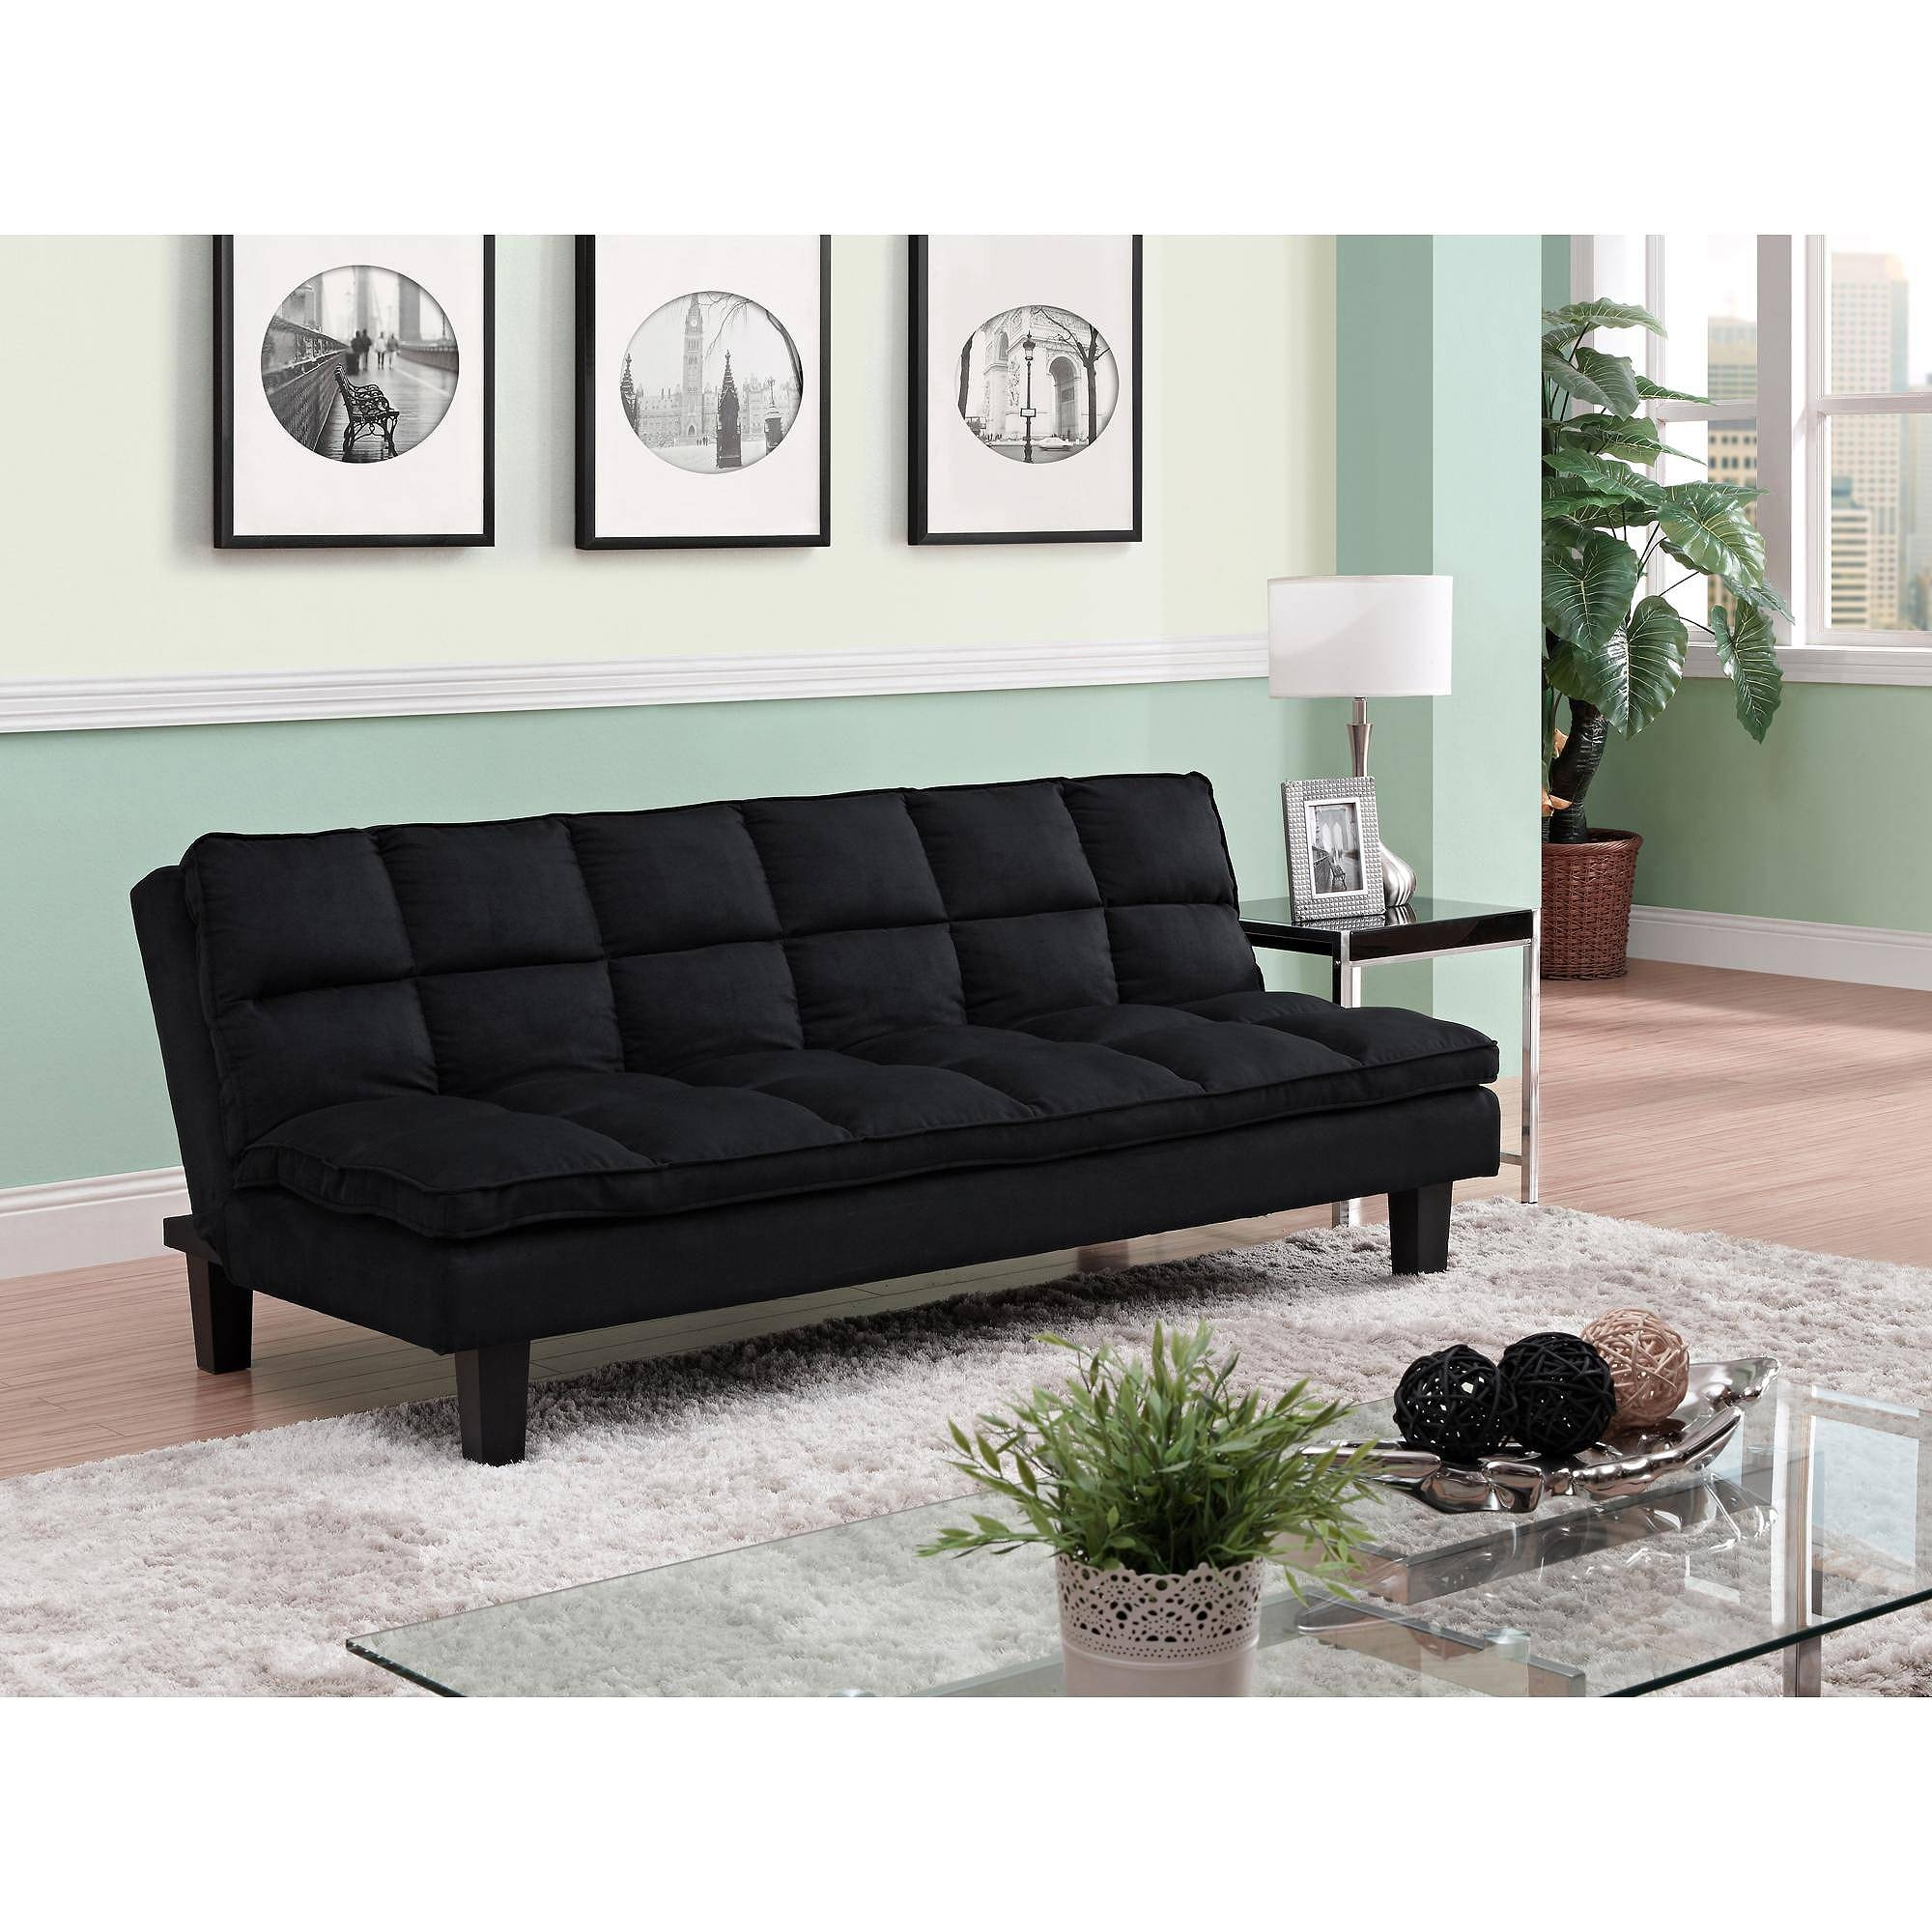 Allegra Pillow-Top Futon, Black - Walmart for Mainstays Sleeper Sofas (Image 2 of 15)